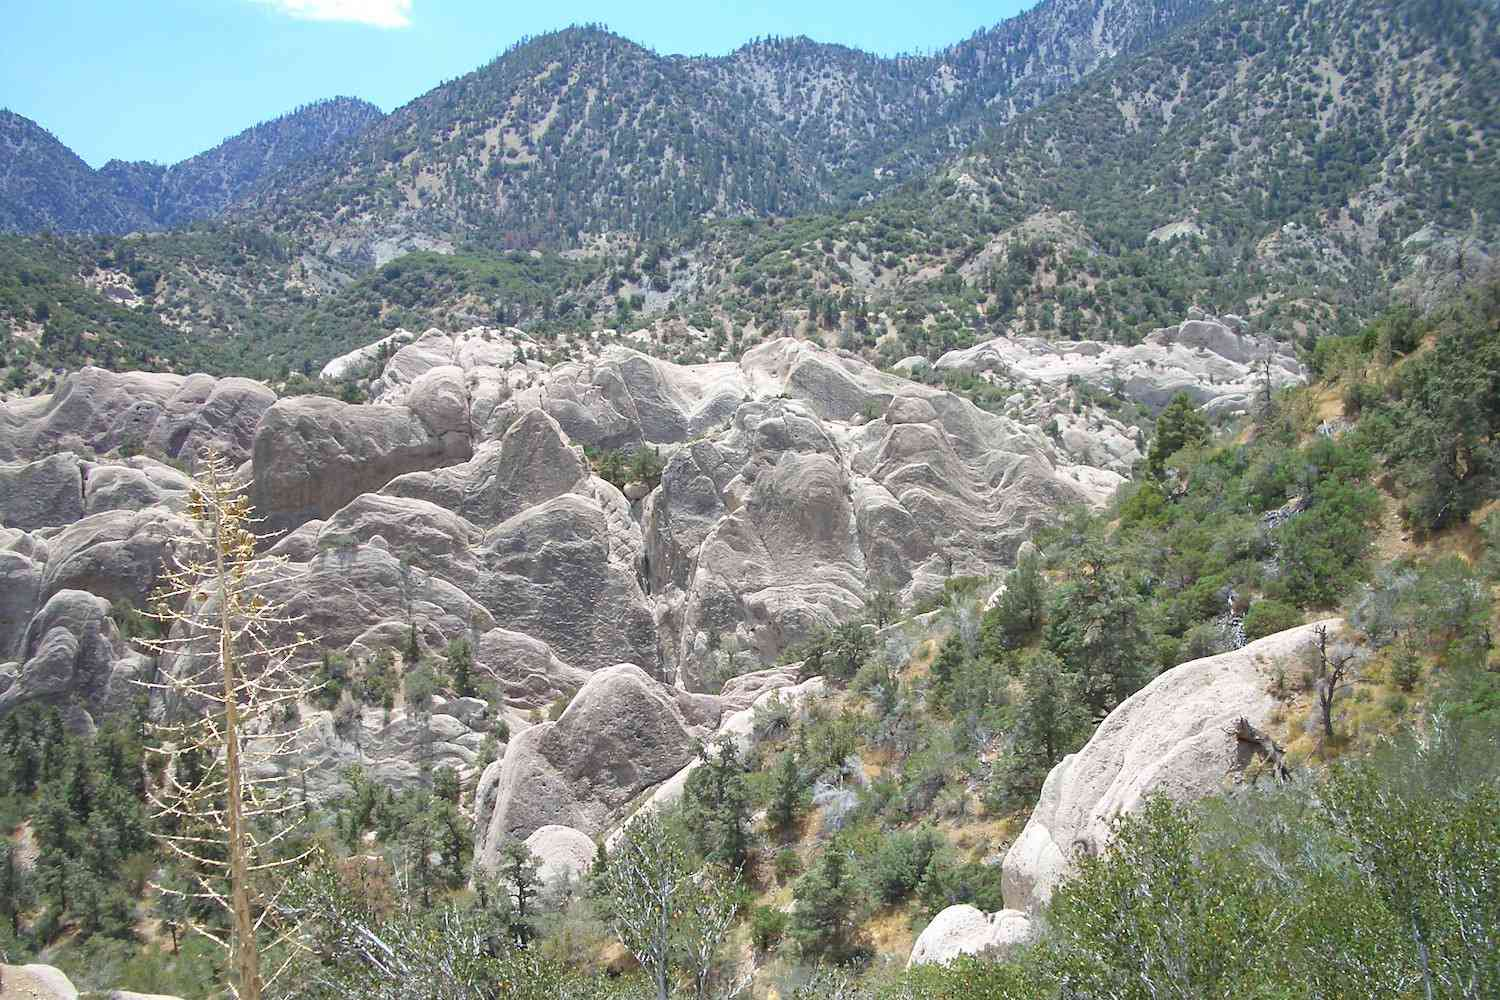 Looking down into the canyon with the limestone formations of Devil's Punchbowl